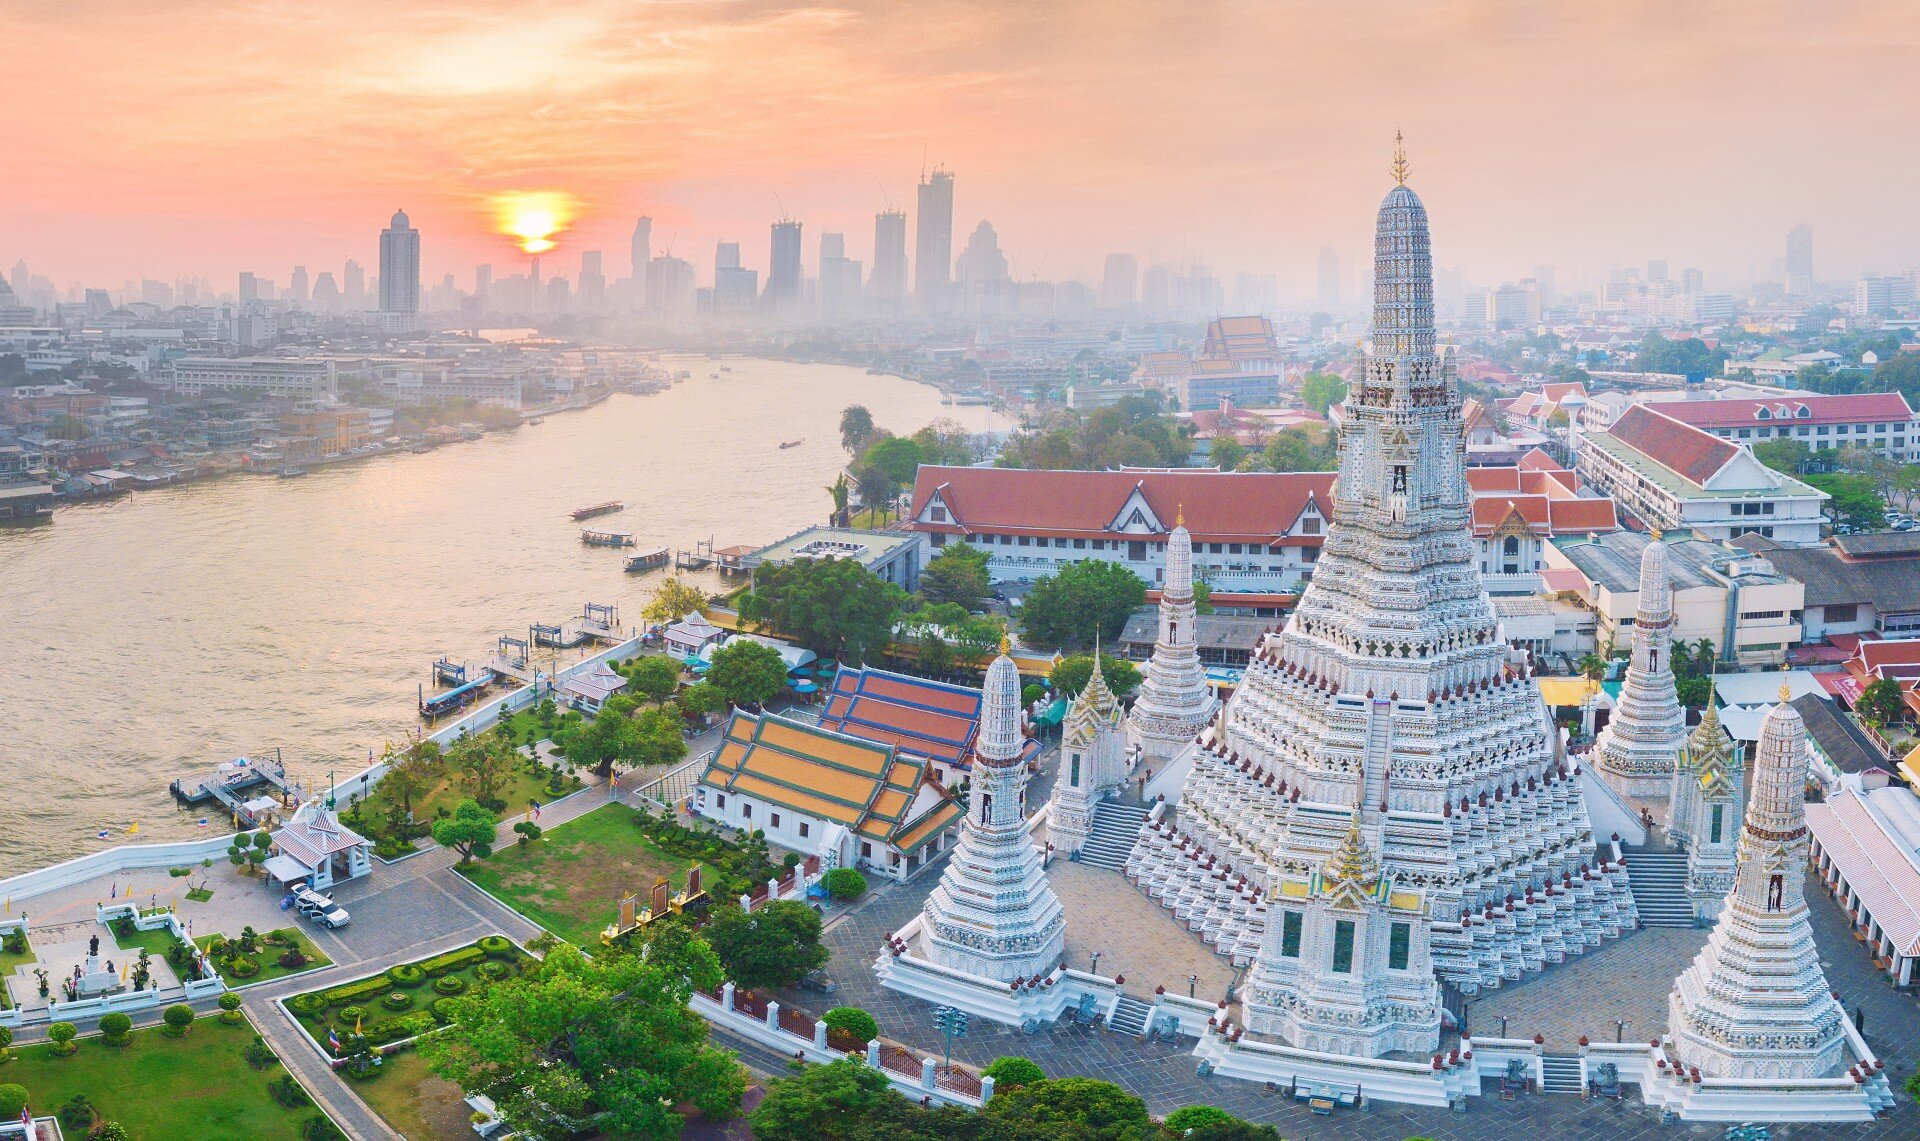 AIA IM Thailand was set up in August 2020 with 847 billion baht of assets transferred from AIA Thailand, housed in five domestic funds and four foreign funds